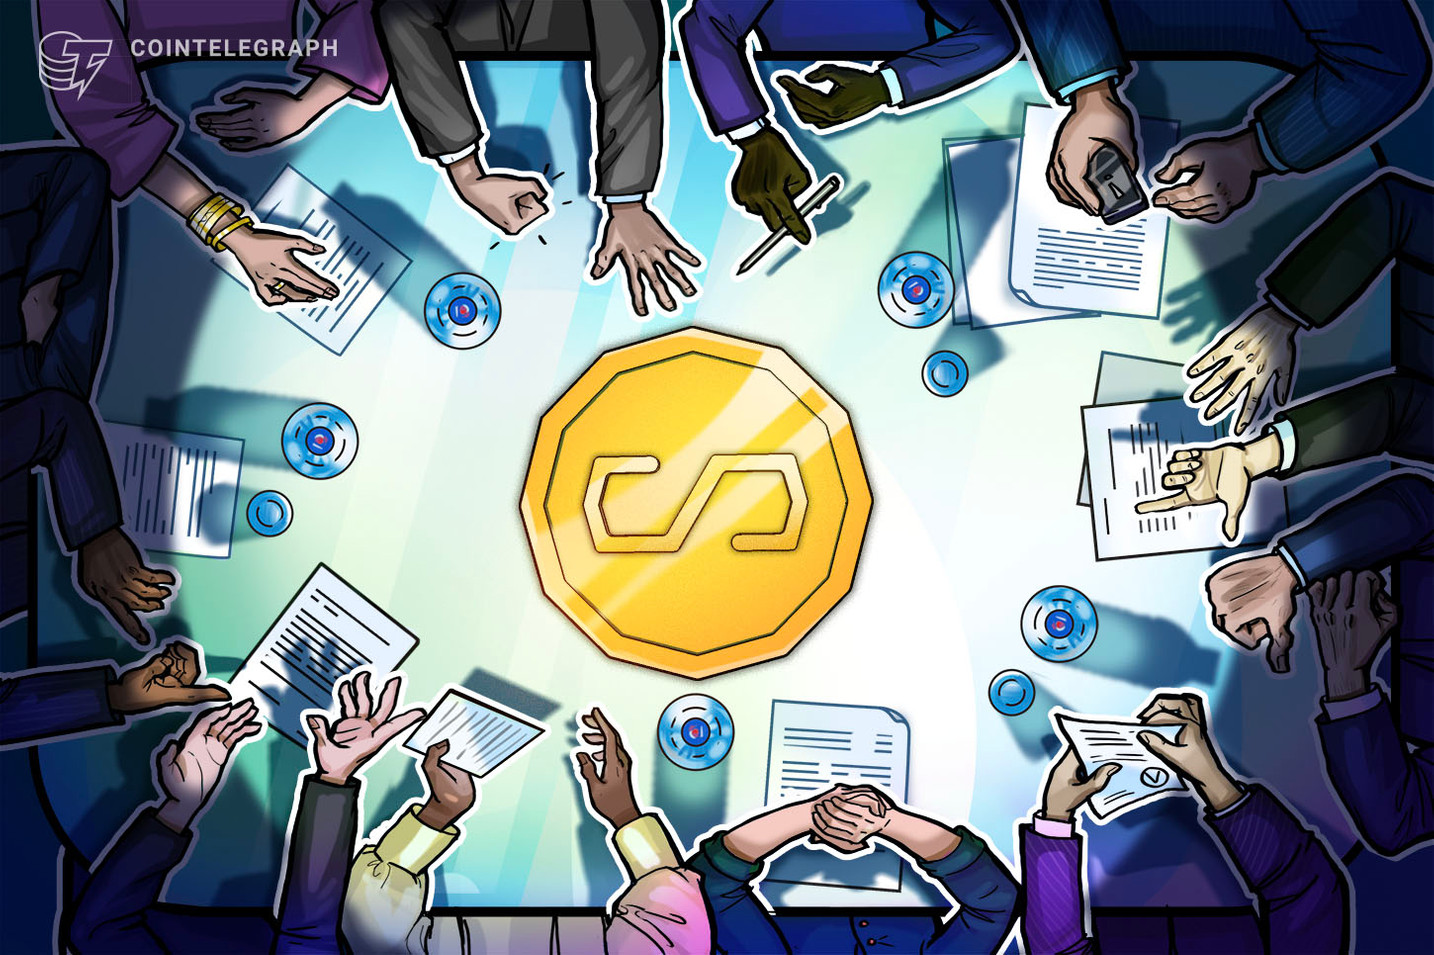 G20 Finance Leaders: Stablecoins Present Serious Regulatory Risks